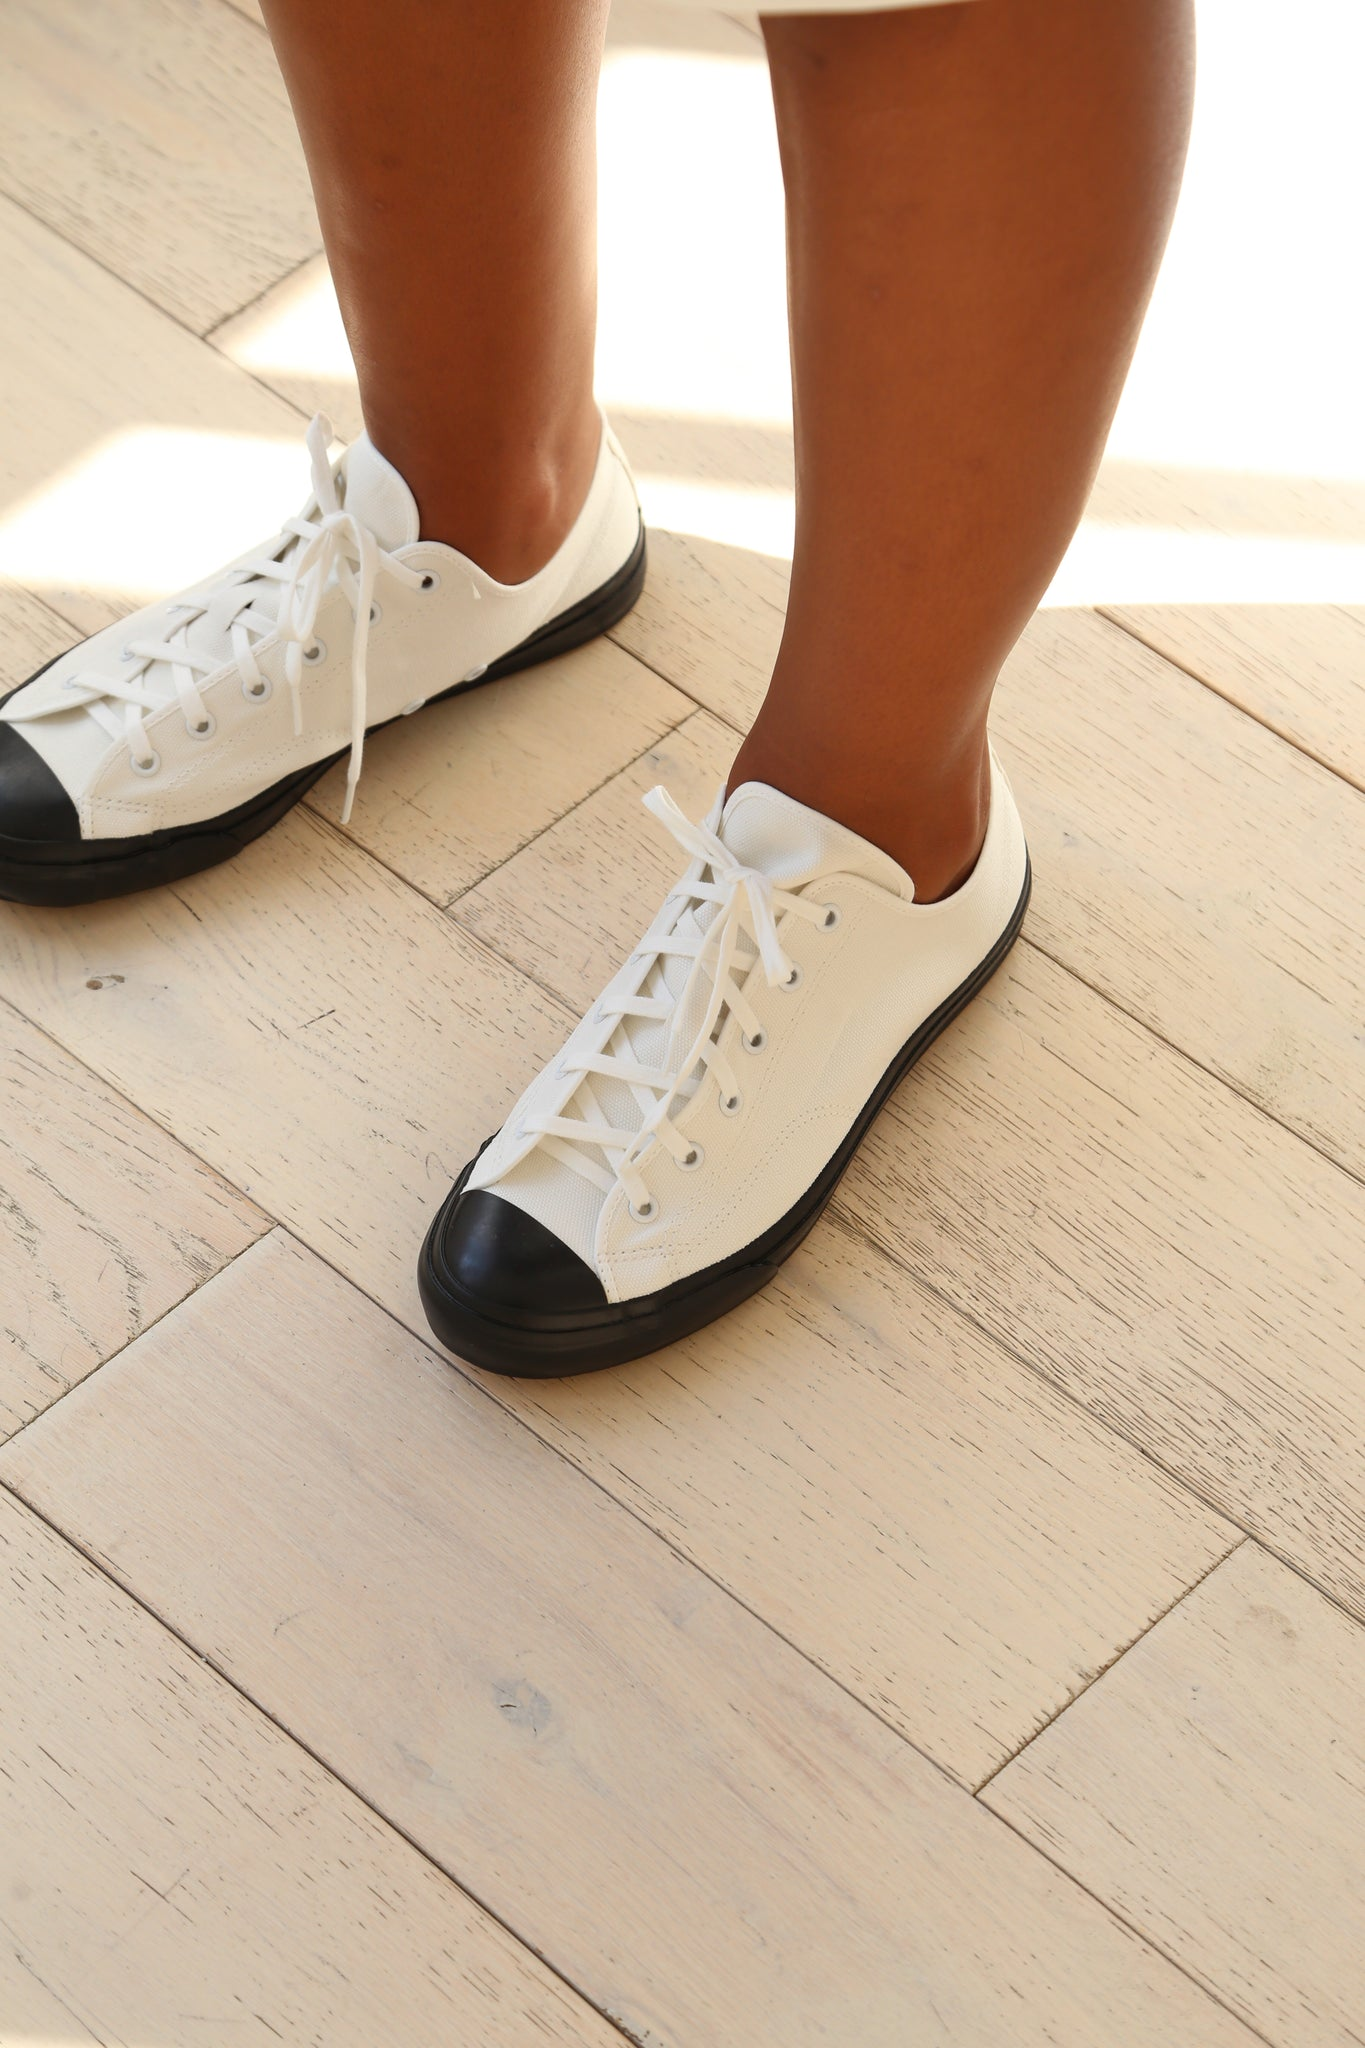 Evam Eva Sneakers in Black and White